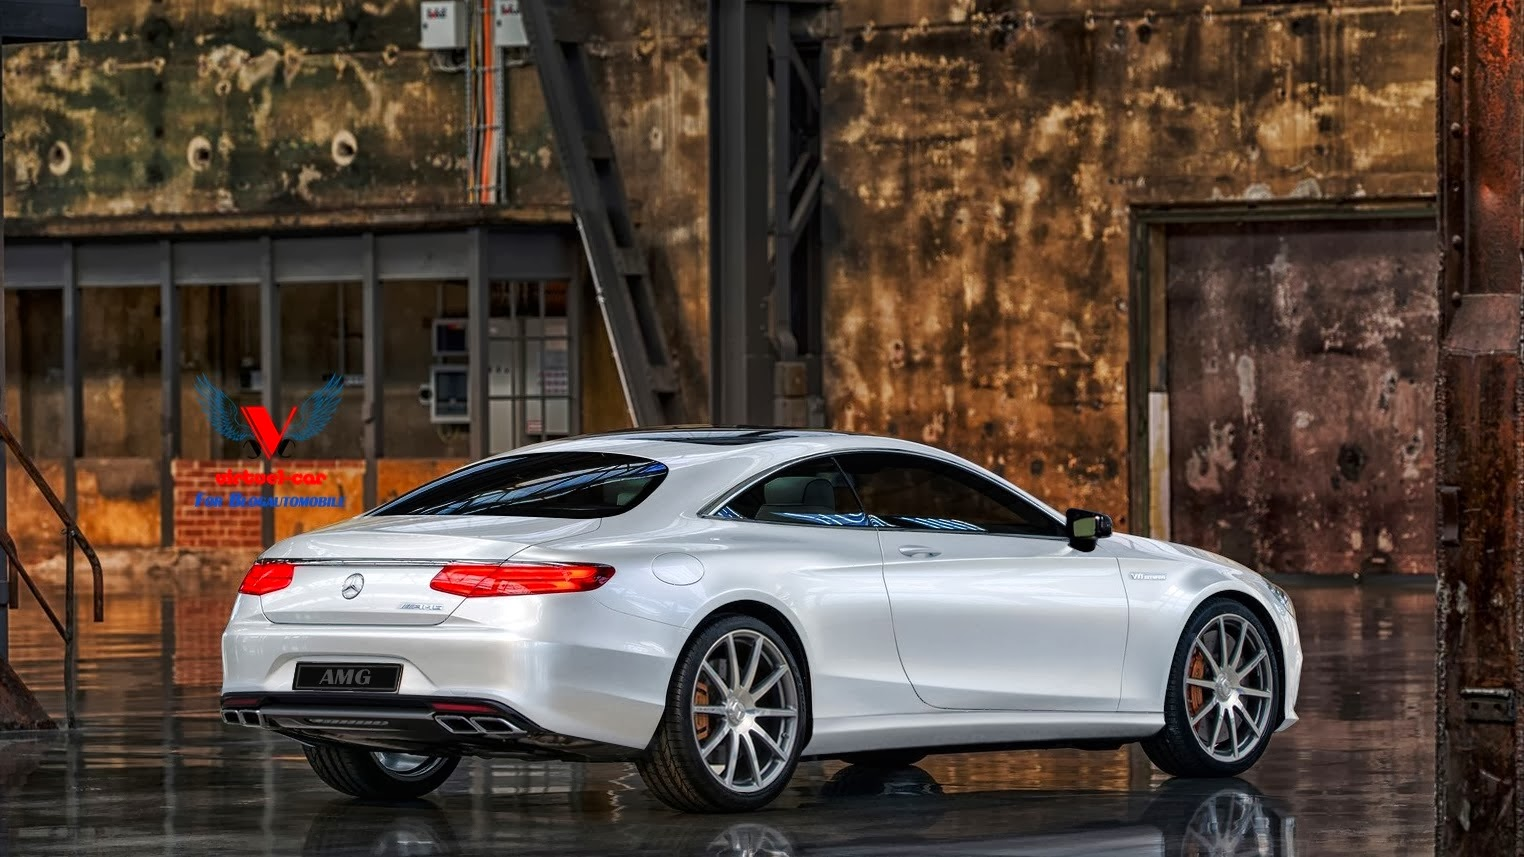 Mercedes Benz S 63 Amg Coupe C217 Gets Rendered